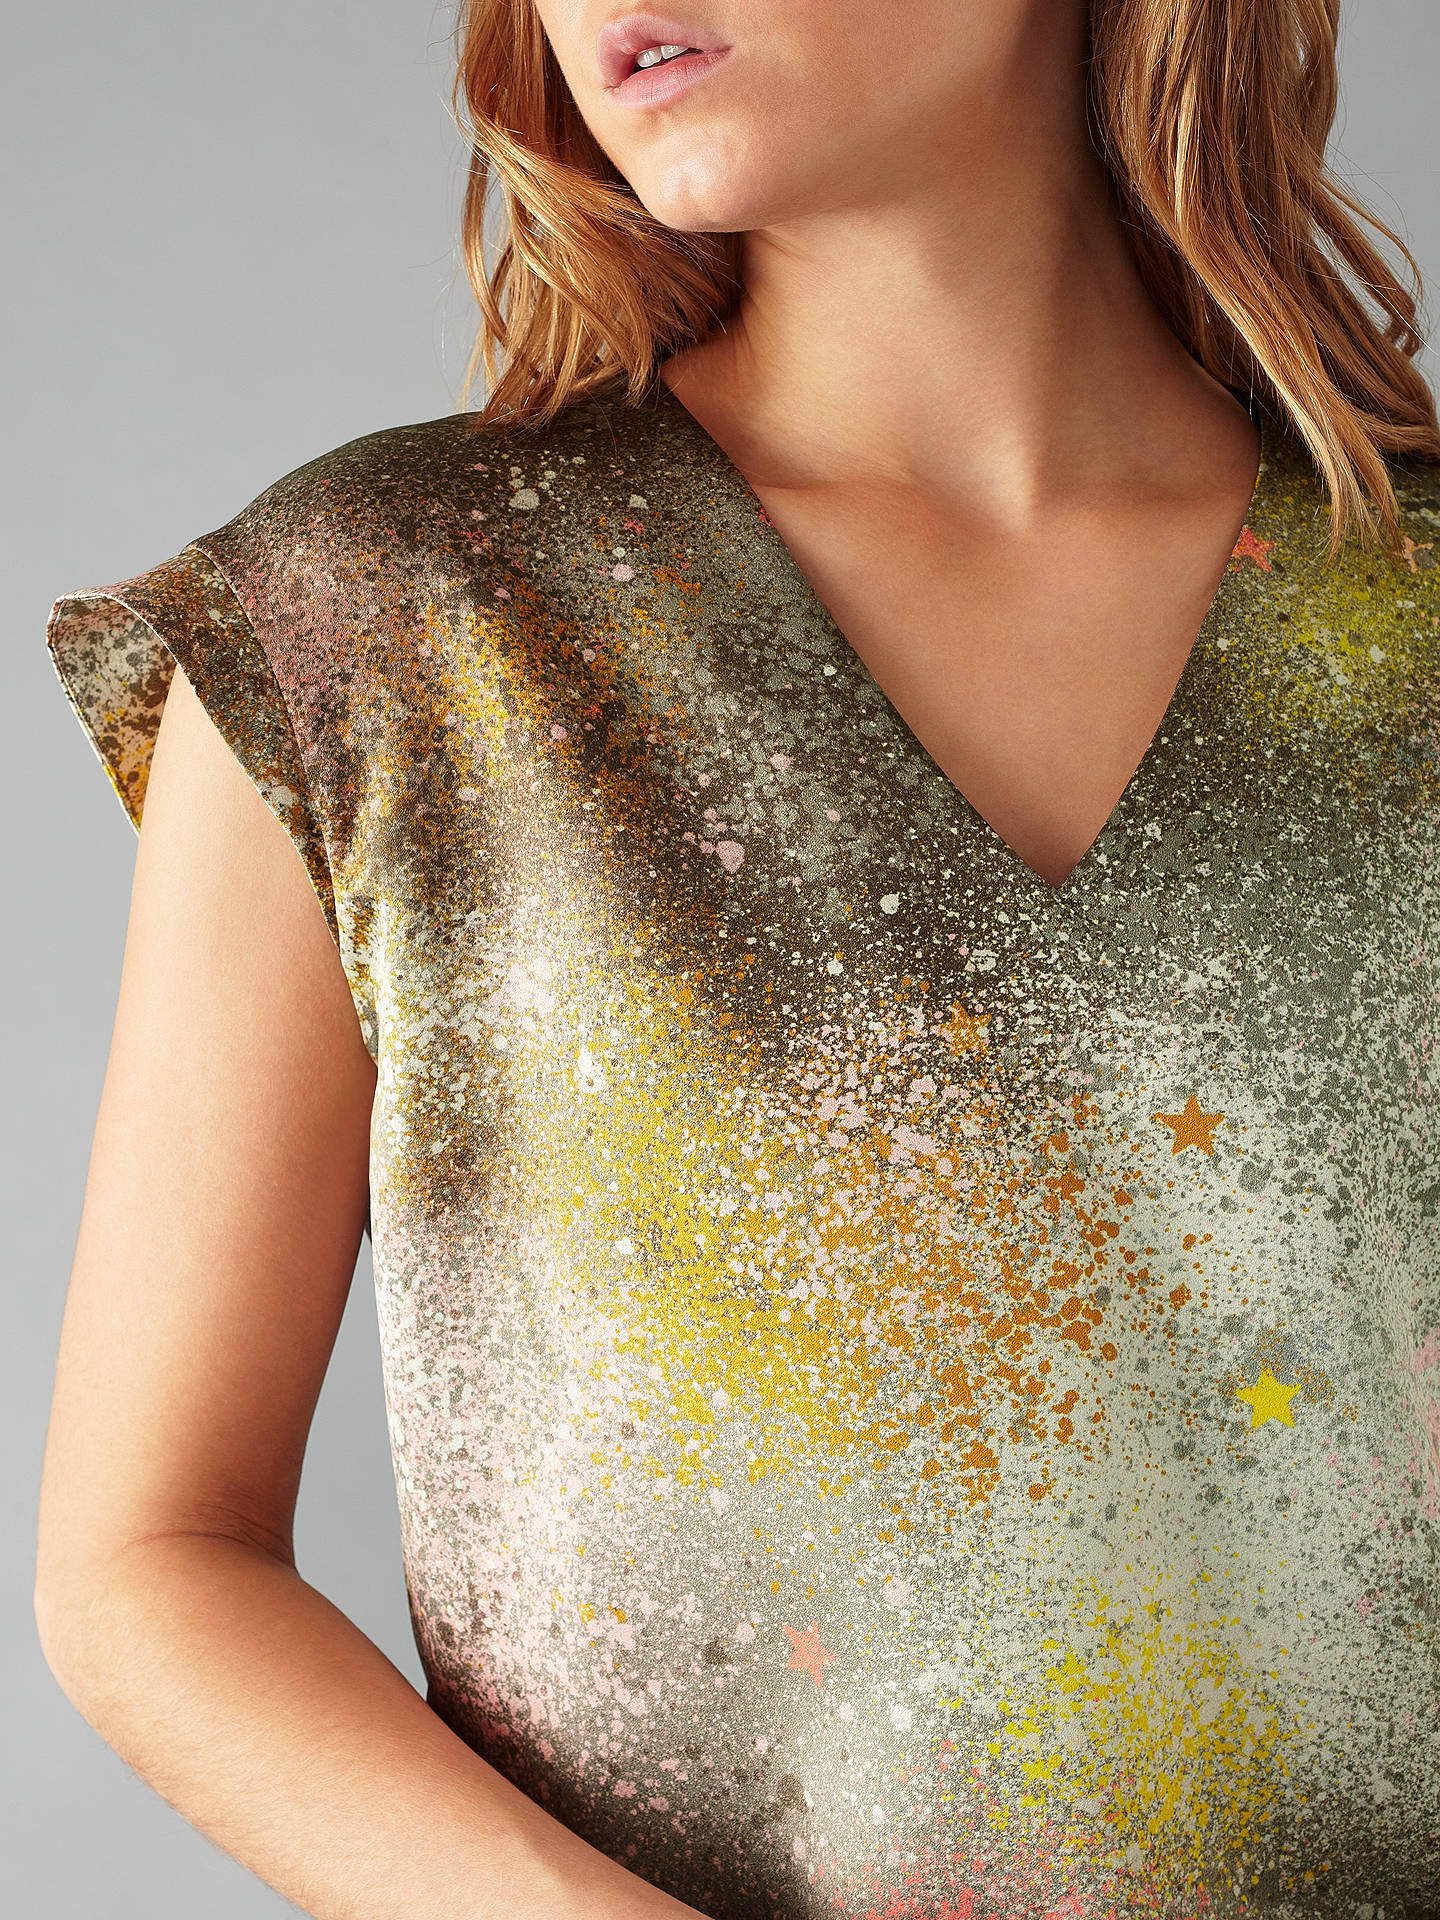 BuyDeborah Campbell Atelier Rae Of Light Star Top, Multi, 8 Online at johnlewis.com